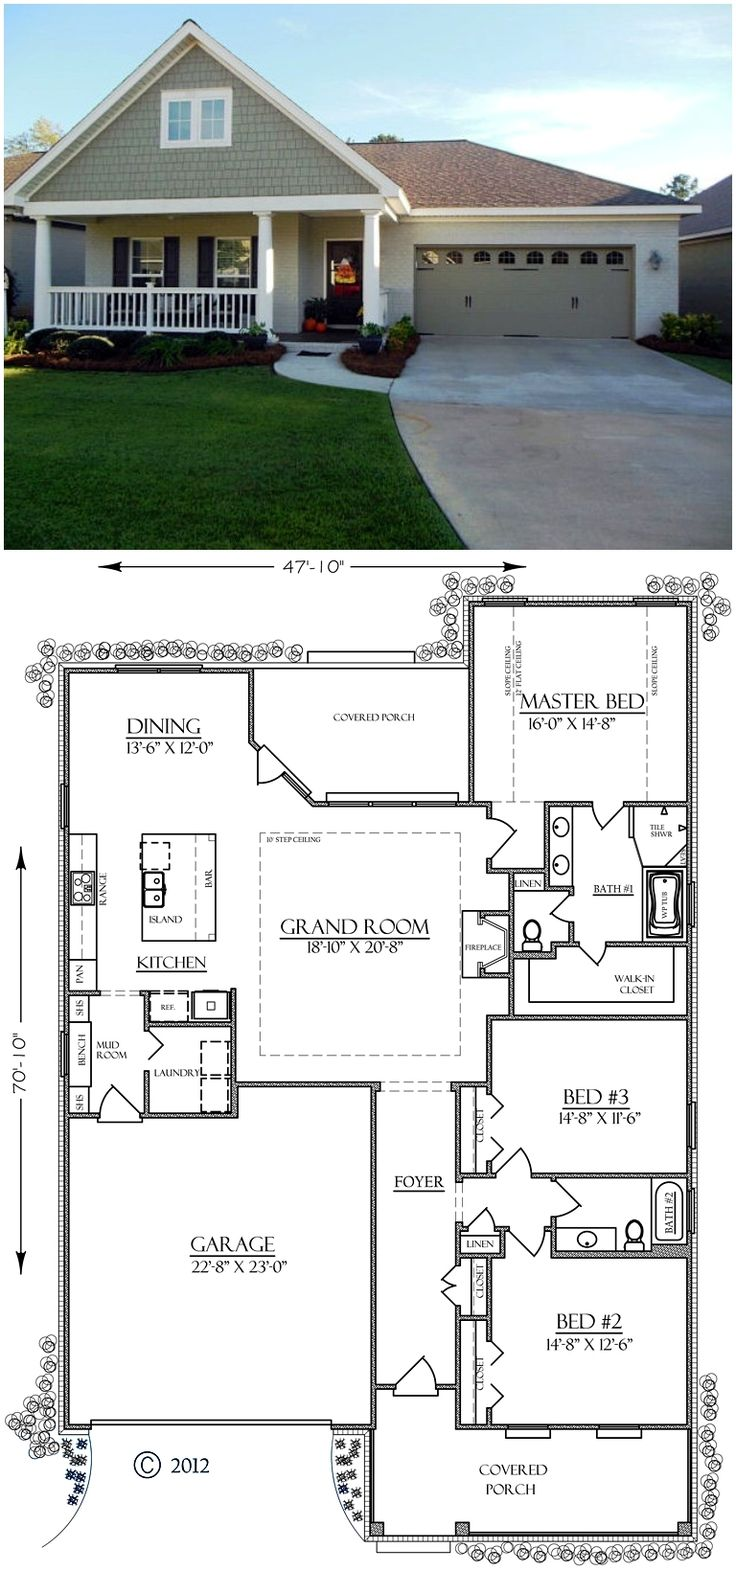 best 20 southern house plans ideas on pinterest southern living best 20 southern house plans ideas on pinterest southern living house plans ranch house plans and farmhouse plans